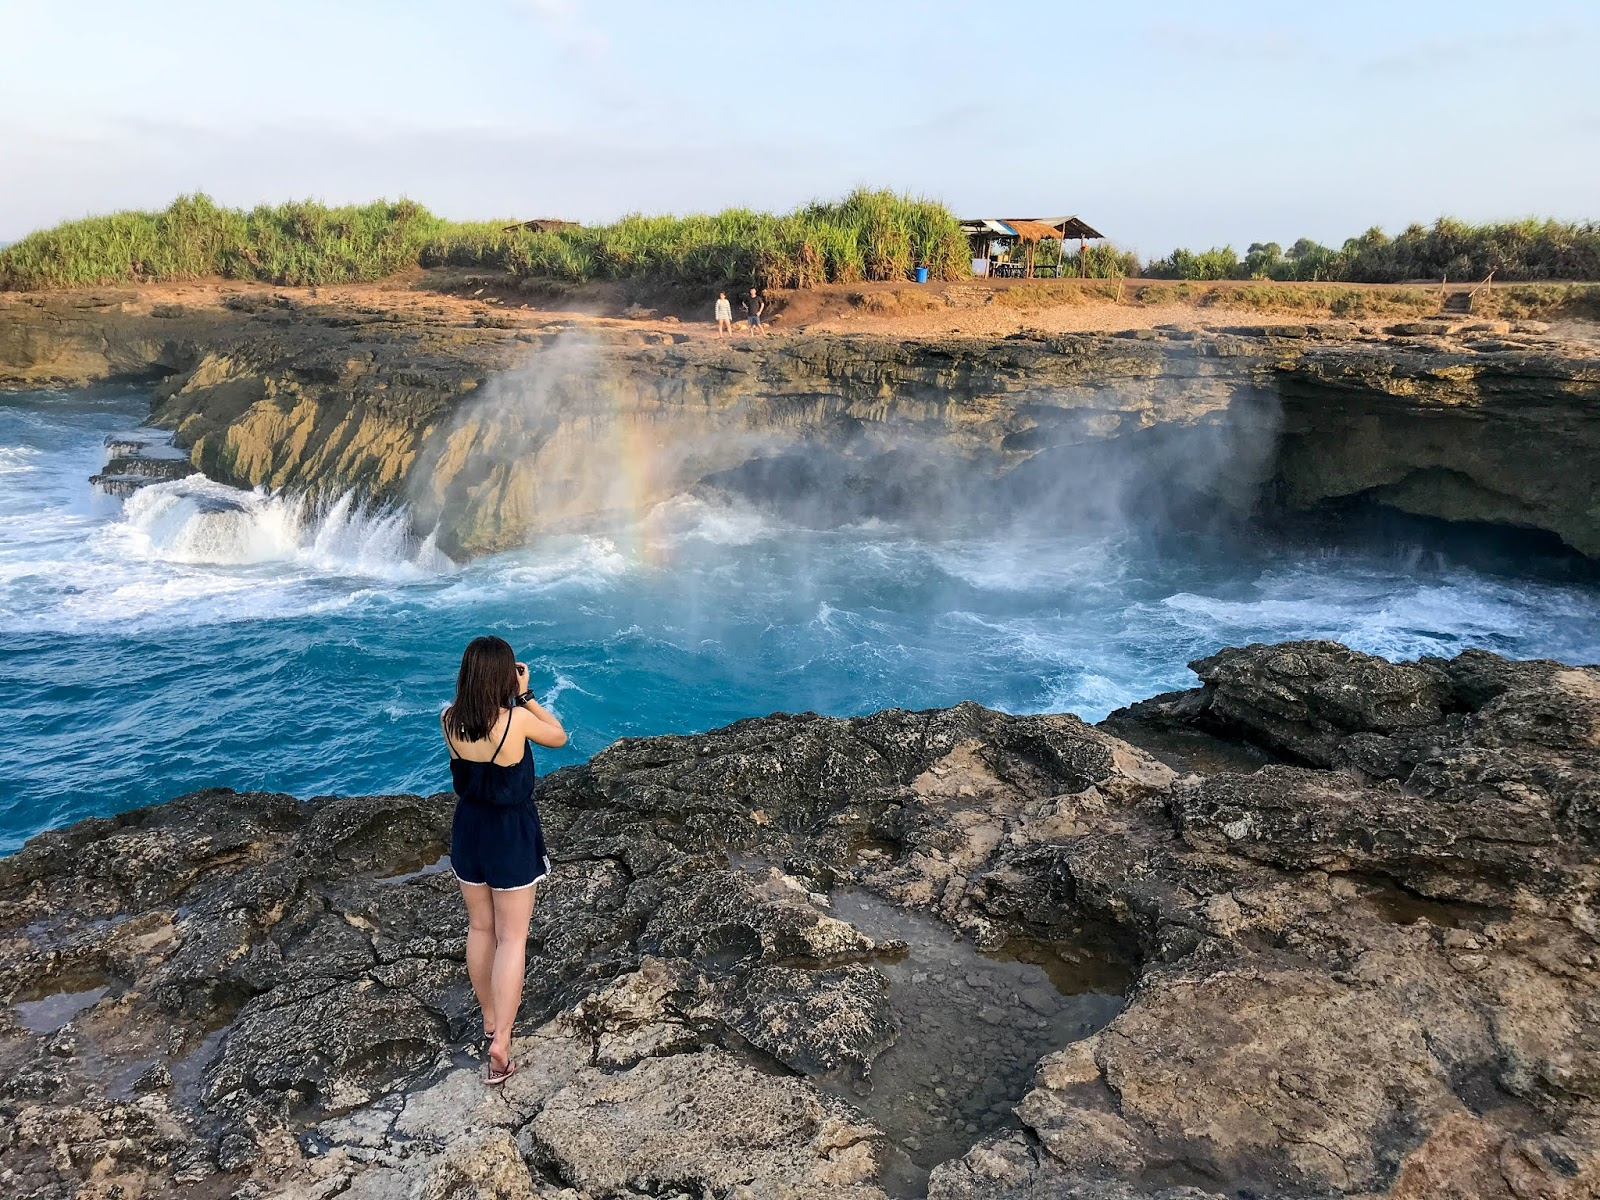 devils tear tourist attraction in lembongan